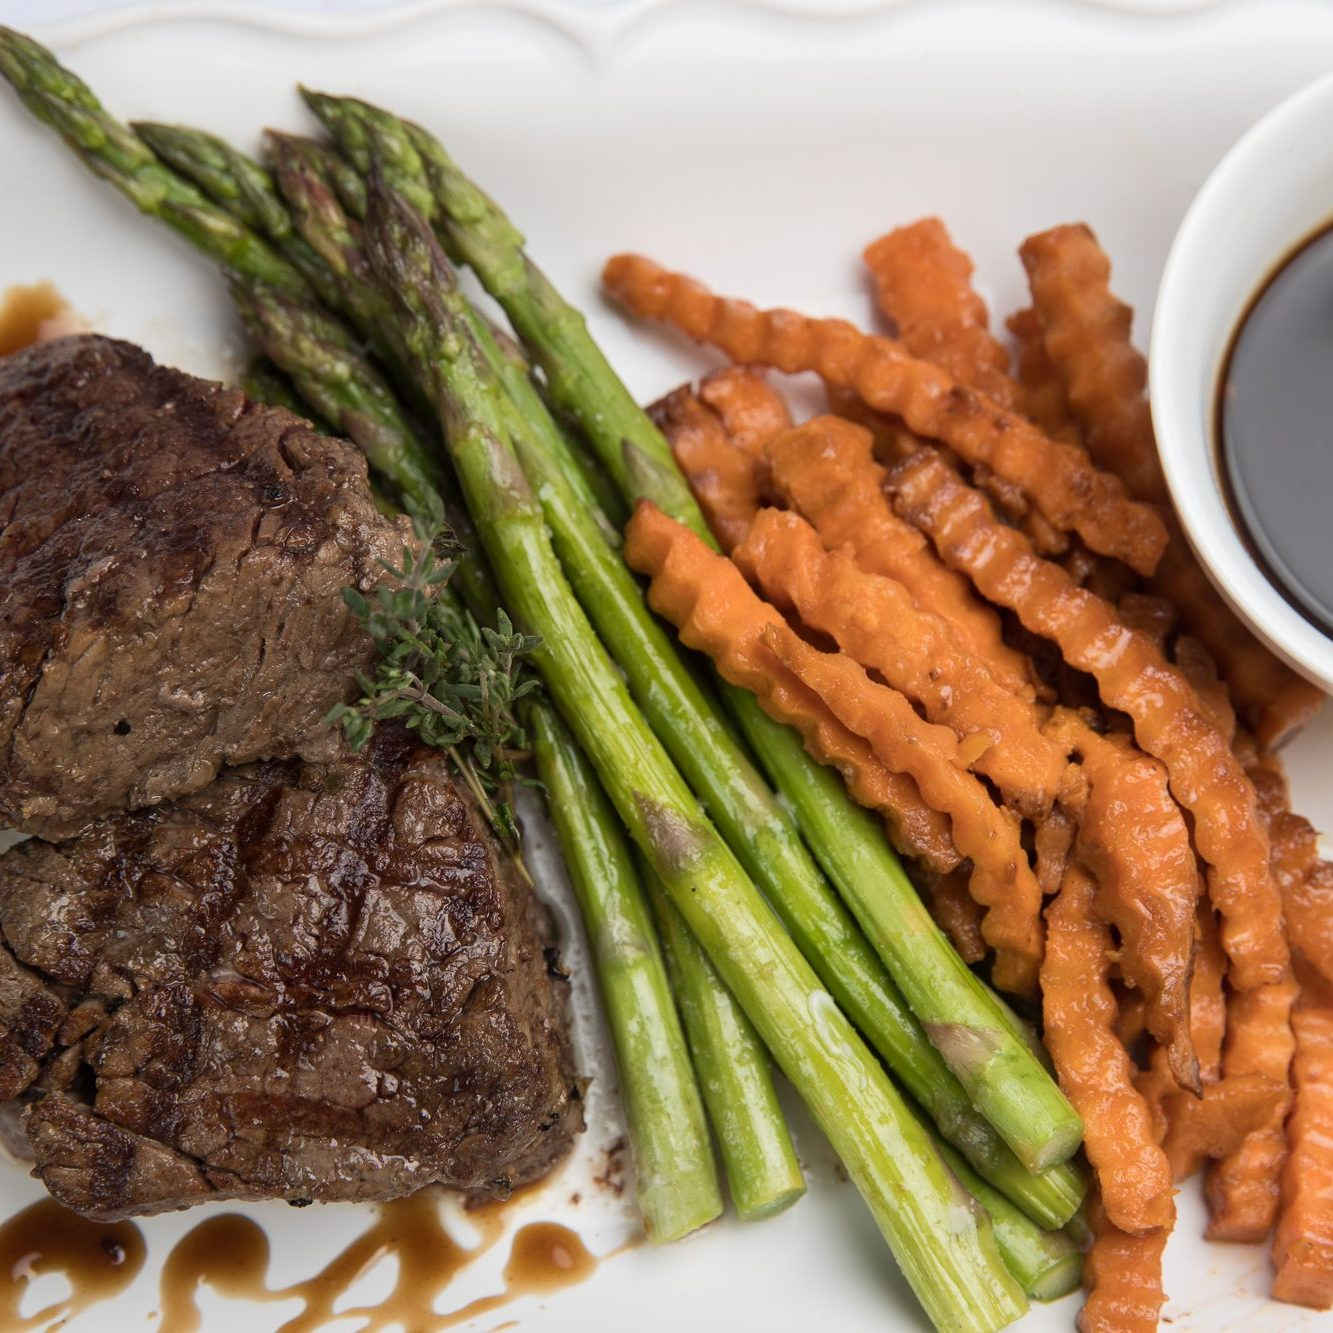 Delicious steak, asparagus, and sweet potato fries plated by Divine Taste of Heaven